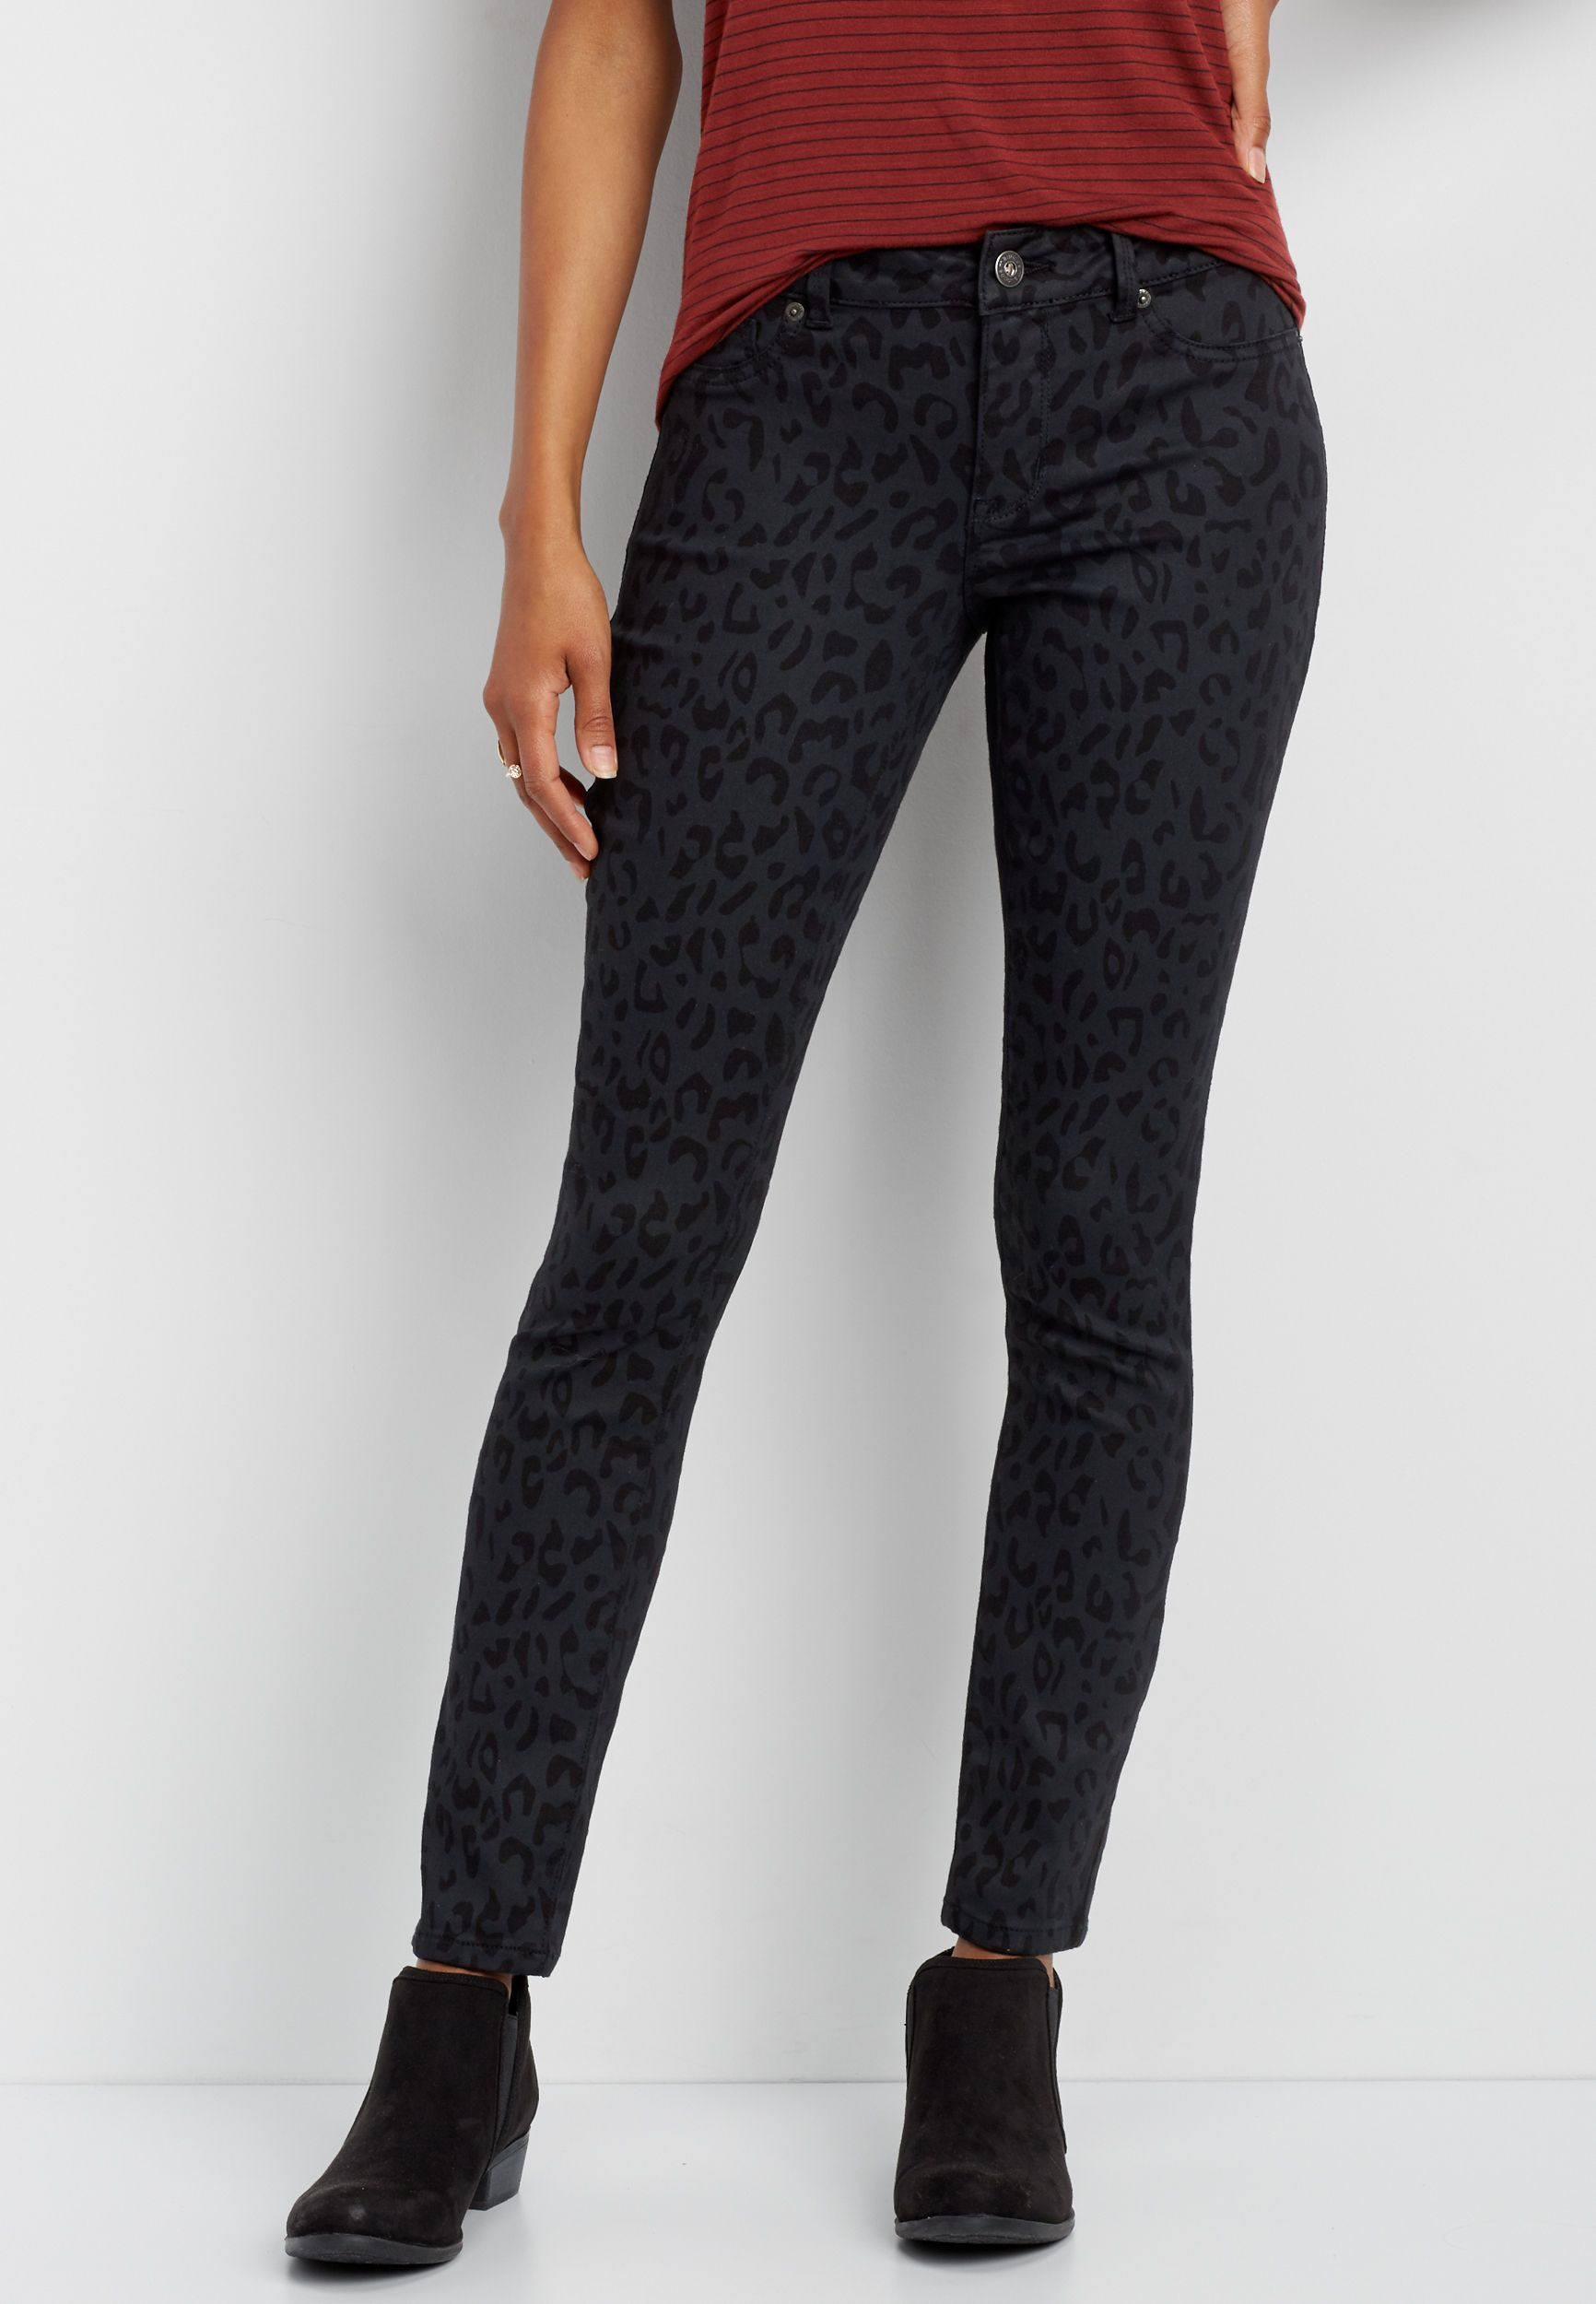 d92608a95df78 DenimFlex™ jegging in animal print | MAURICES | Jeggings, Black ...